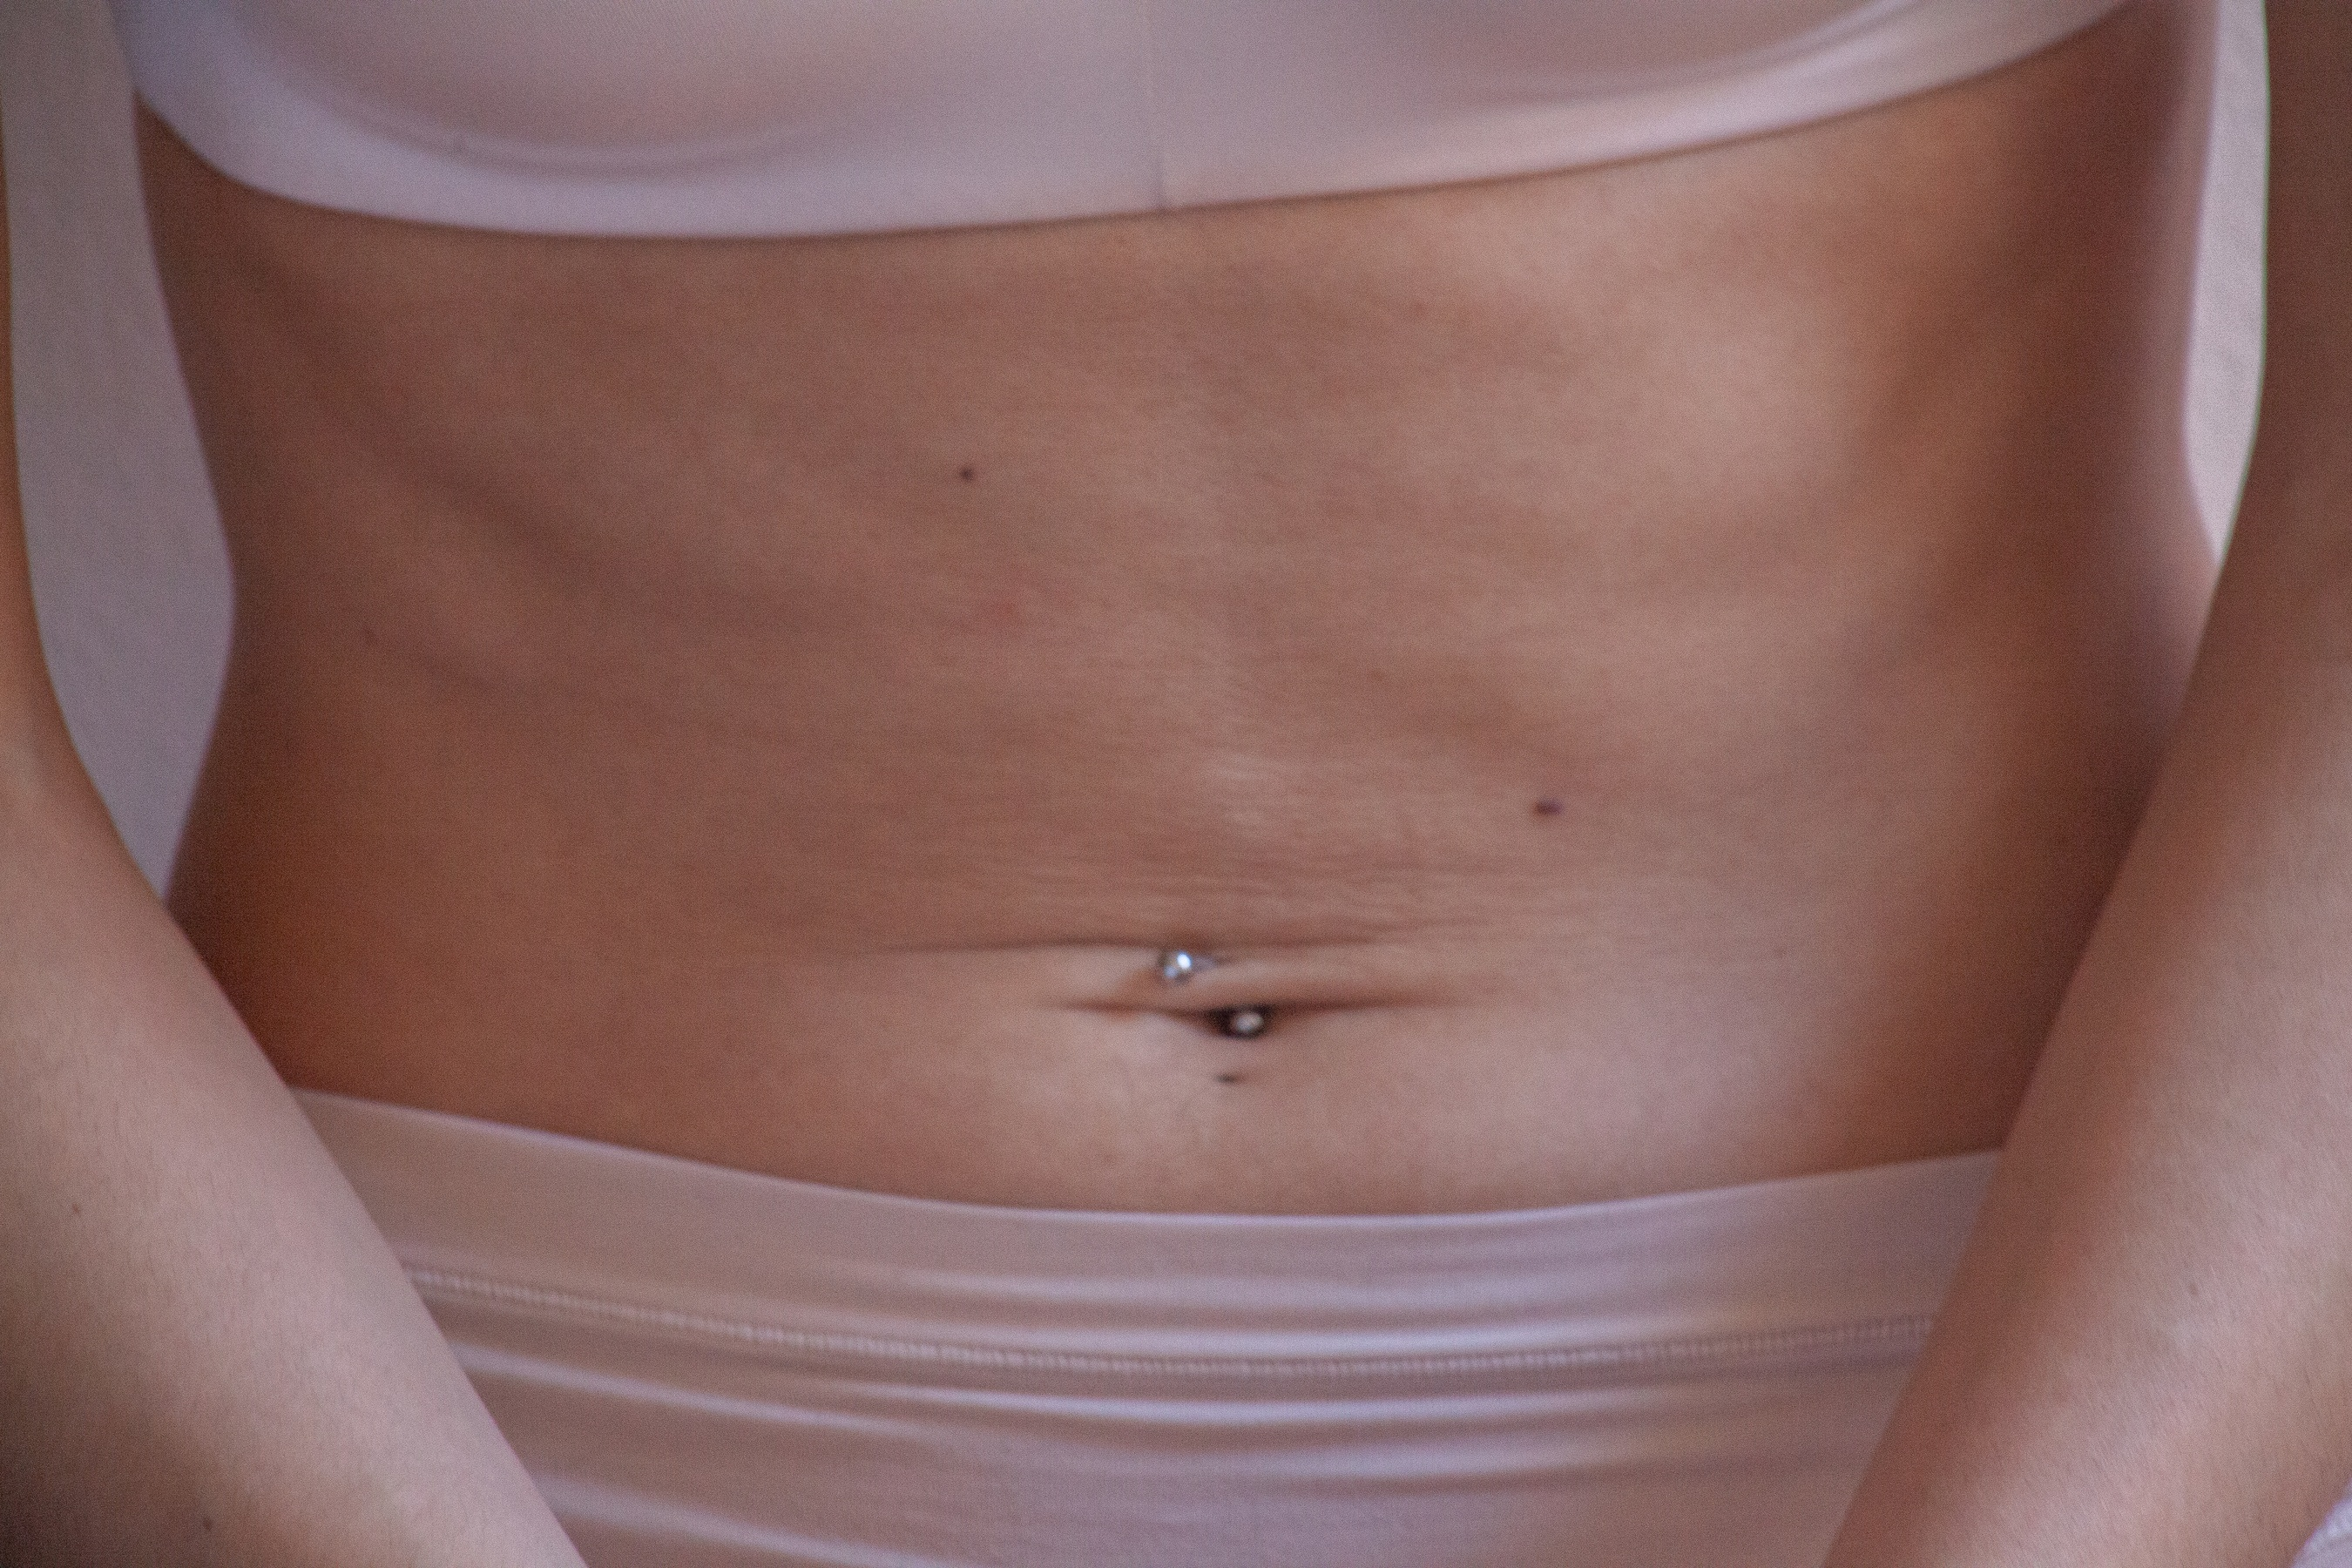 A bare tummy exposed, the person wearing flesh toned underwear